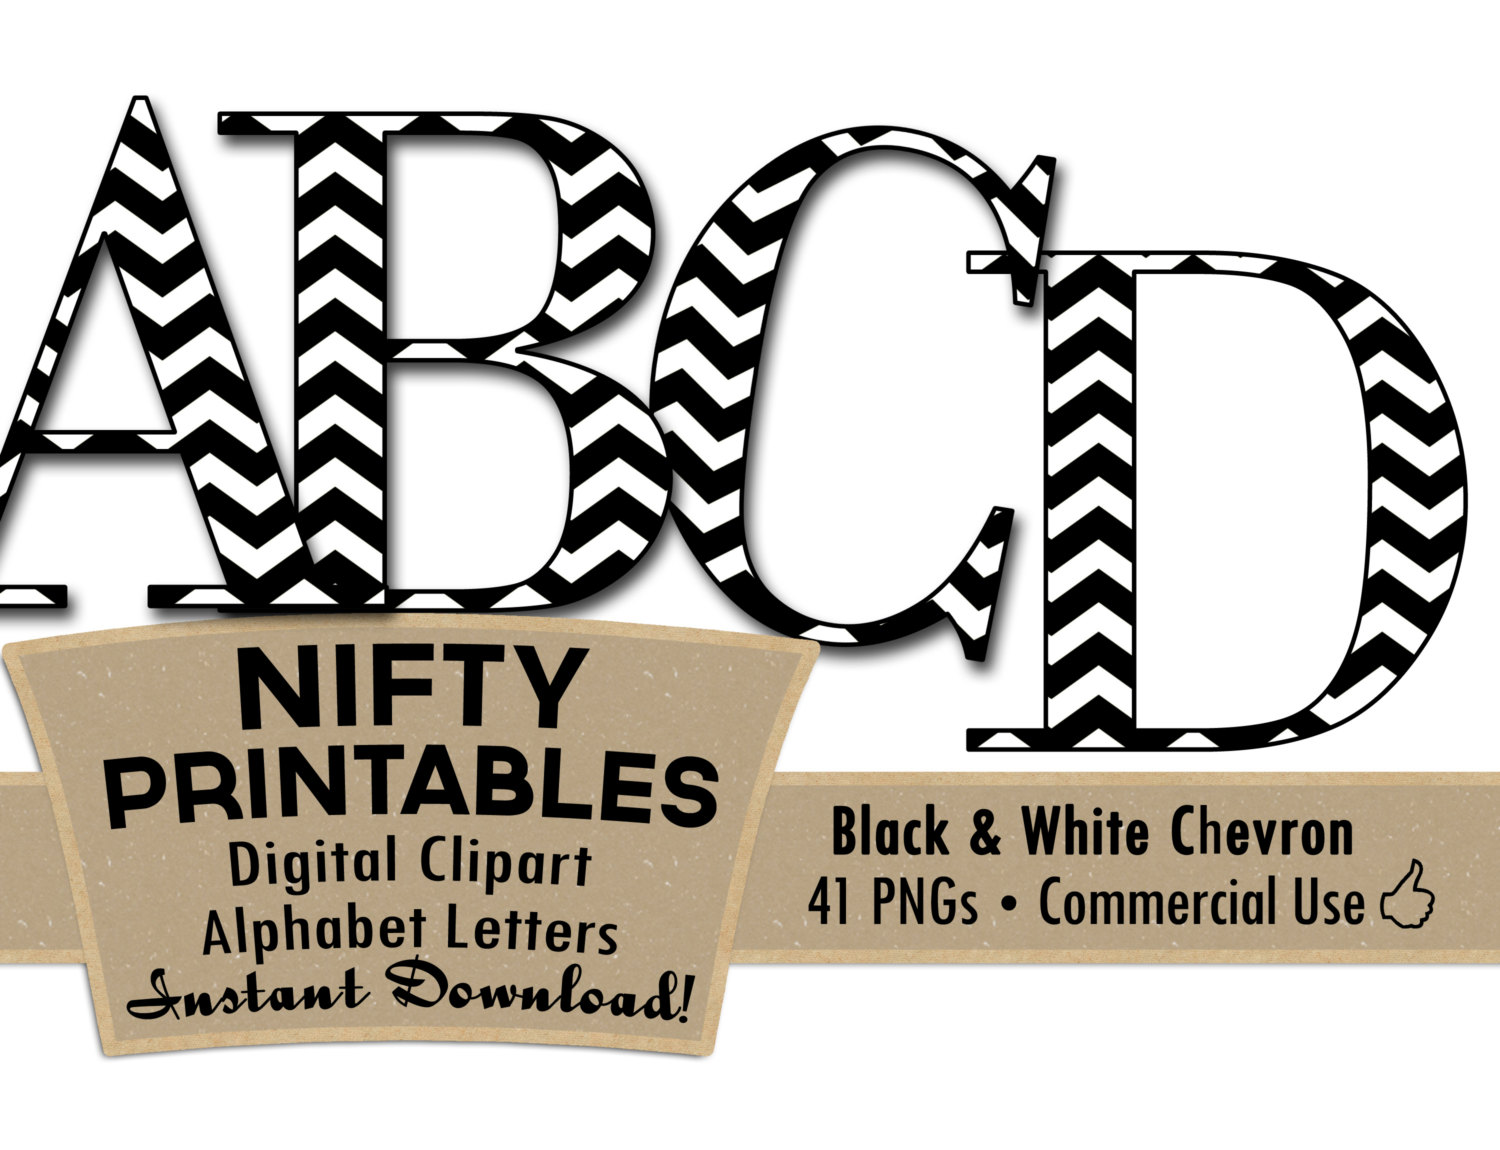 Lower Case Black And White Chevron Clip Art Alphabet Letter Set.